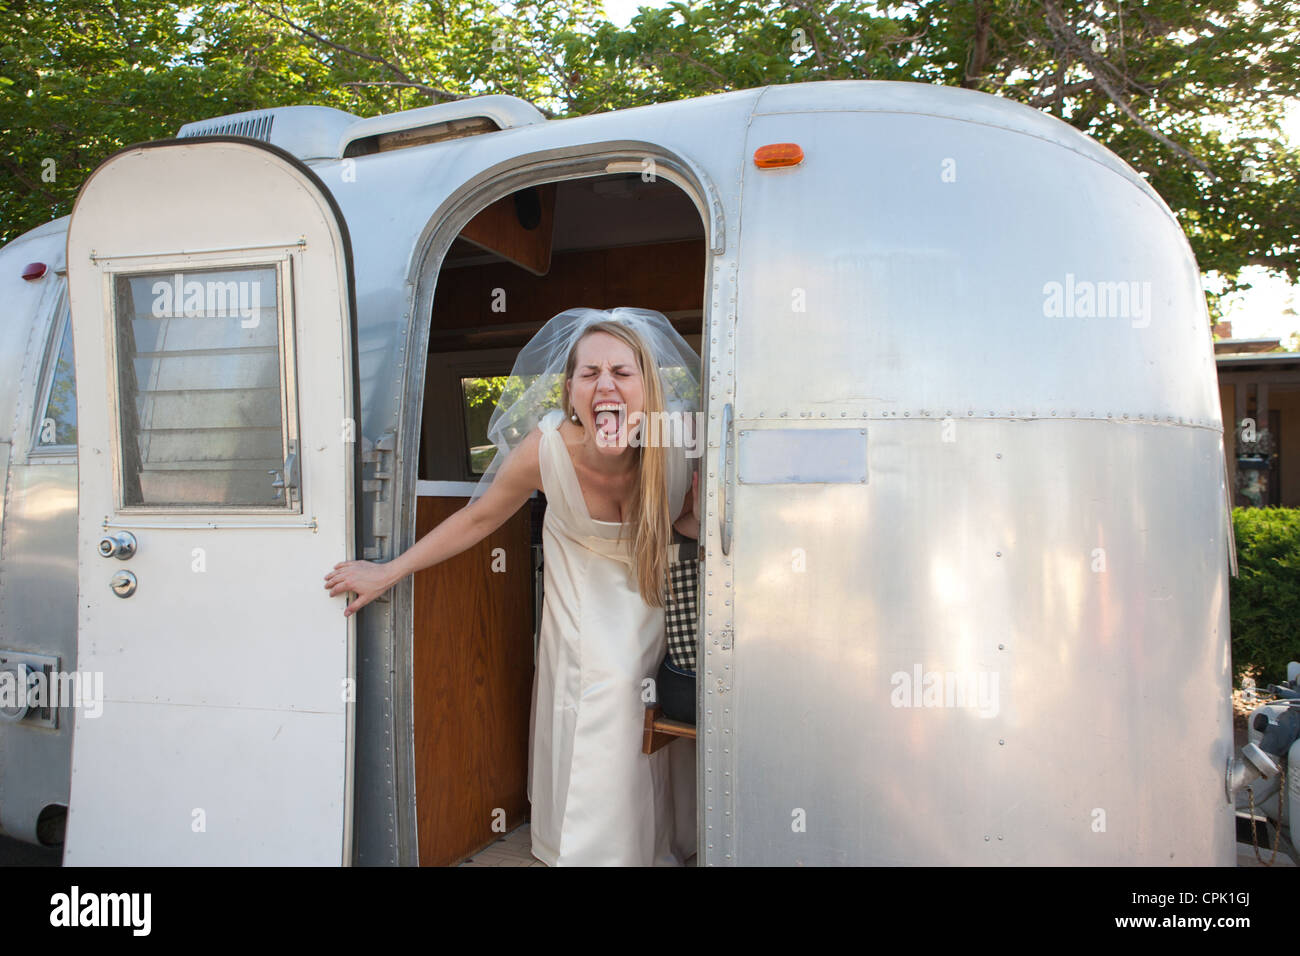 Sposa urlando con entusiasmo all'interno di un rimorchio Airstream. Foto Stock